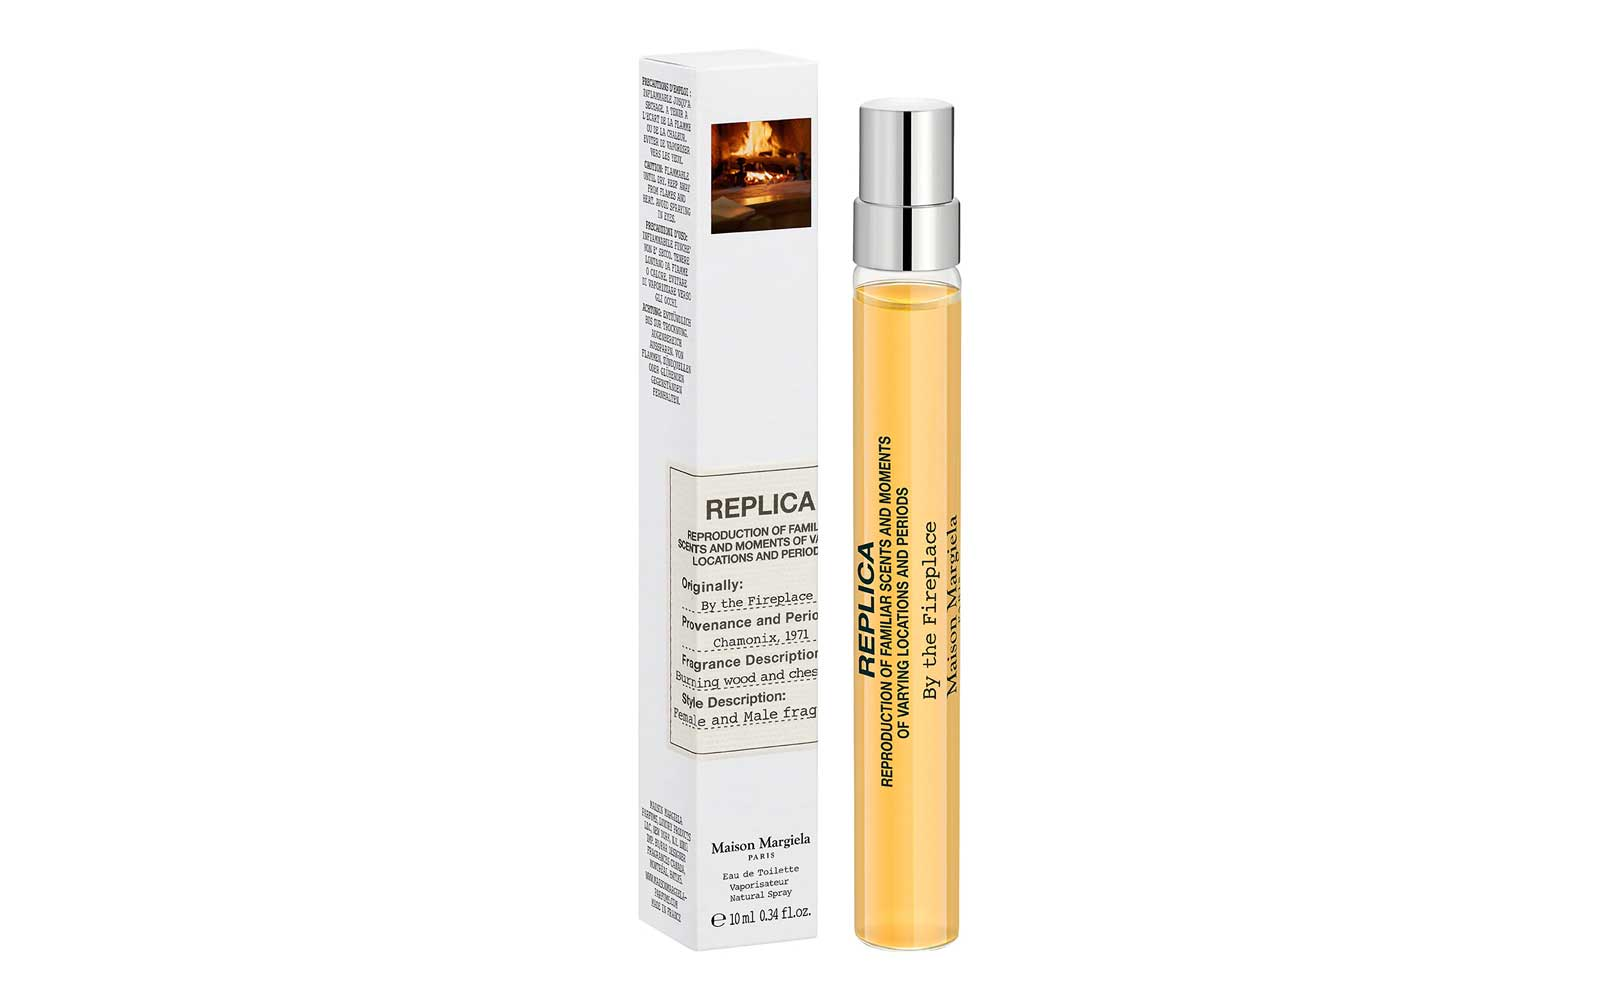 Maison Margiela Replica Fragrance Travel Bottle